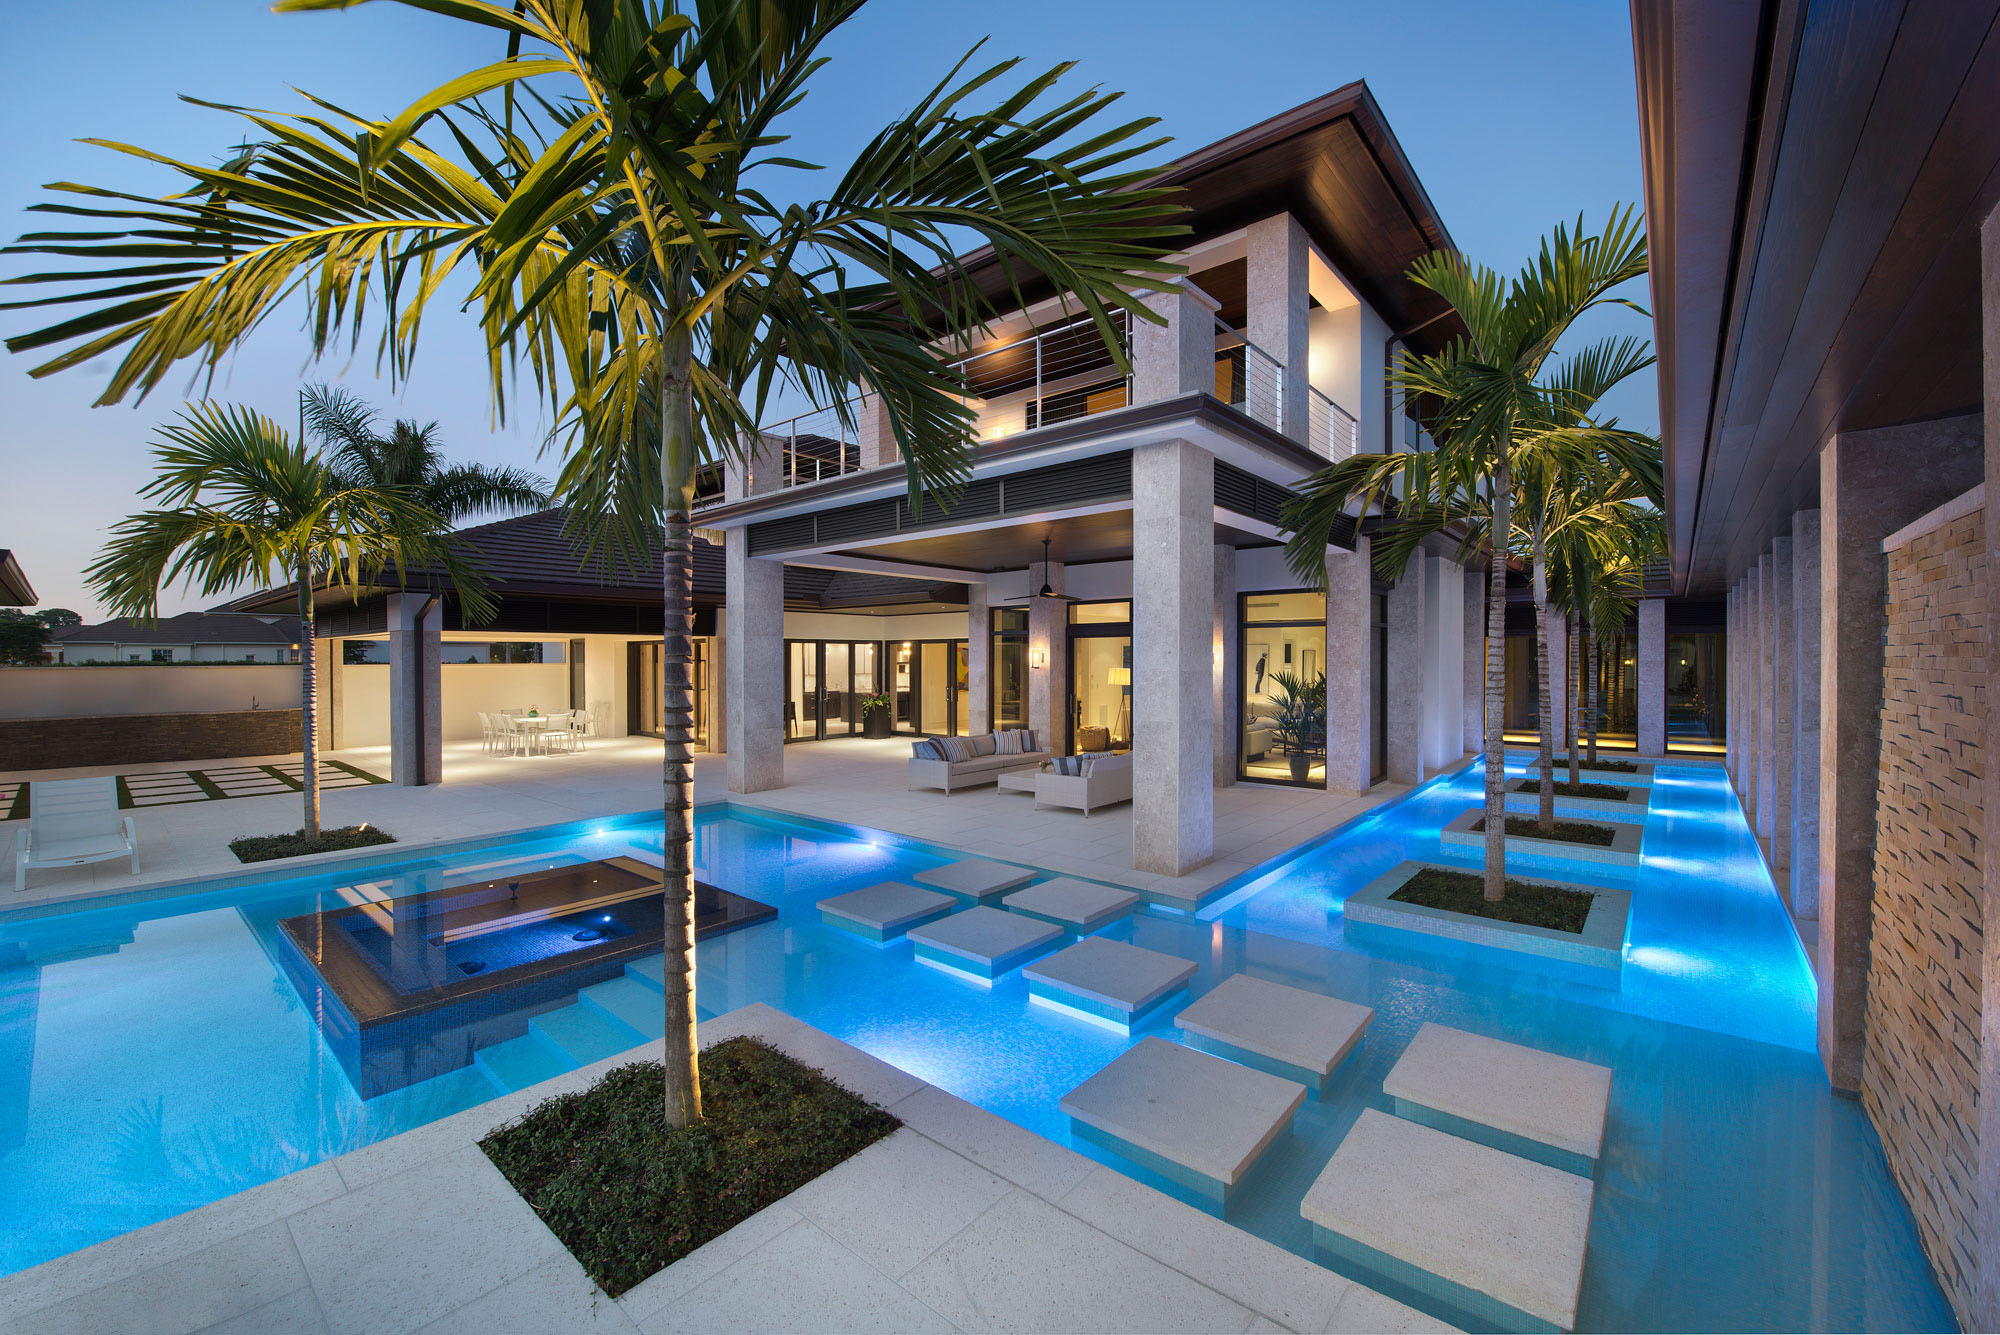 Custom dream home in florida with elegant swimming pool idesignarch interior design Red house hotel swimming pool